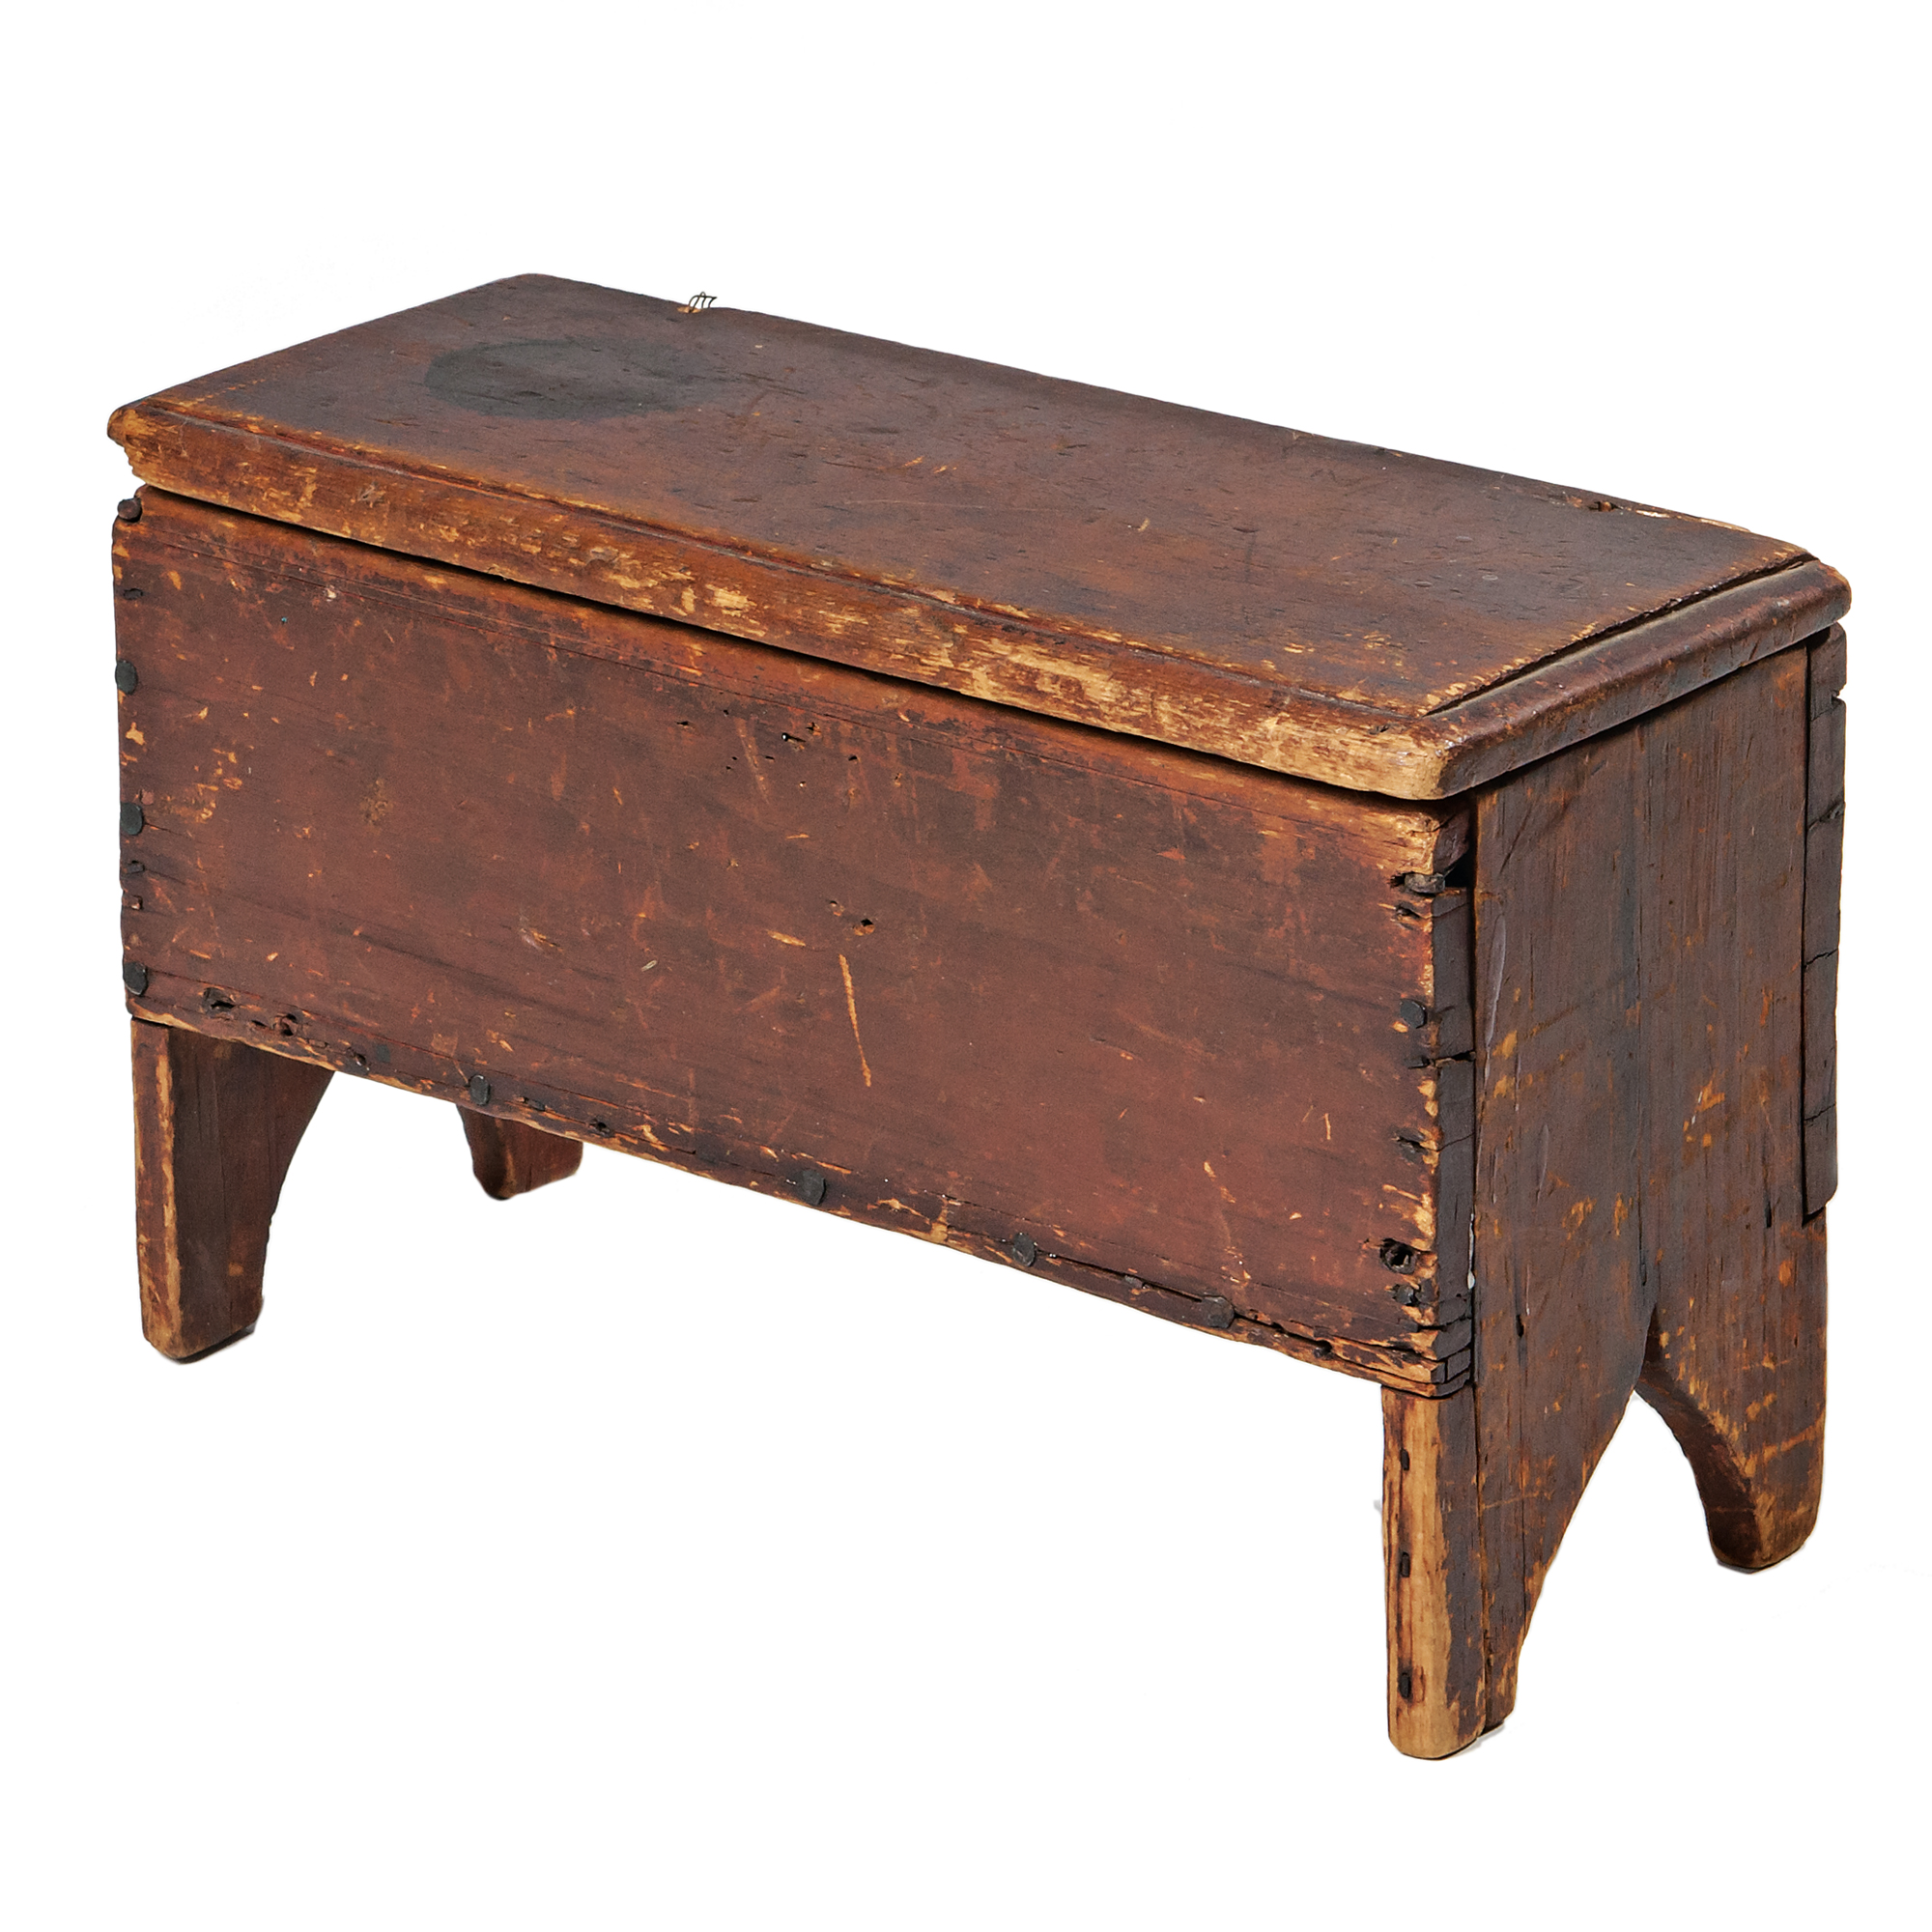 Miniature Red-stained Six-board Chest (Lot 1088, Estimate: $400-600)